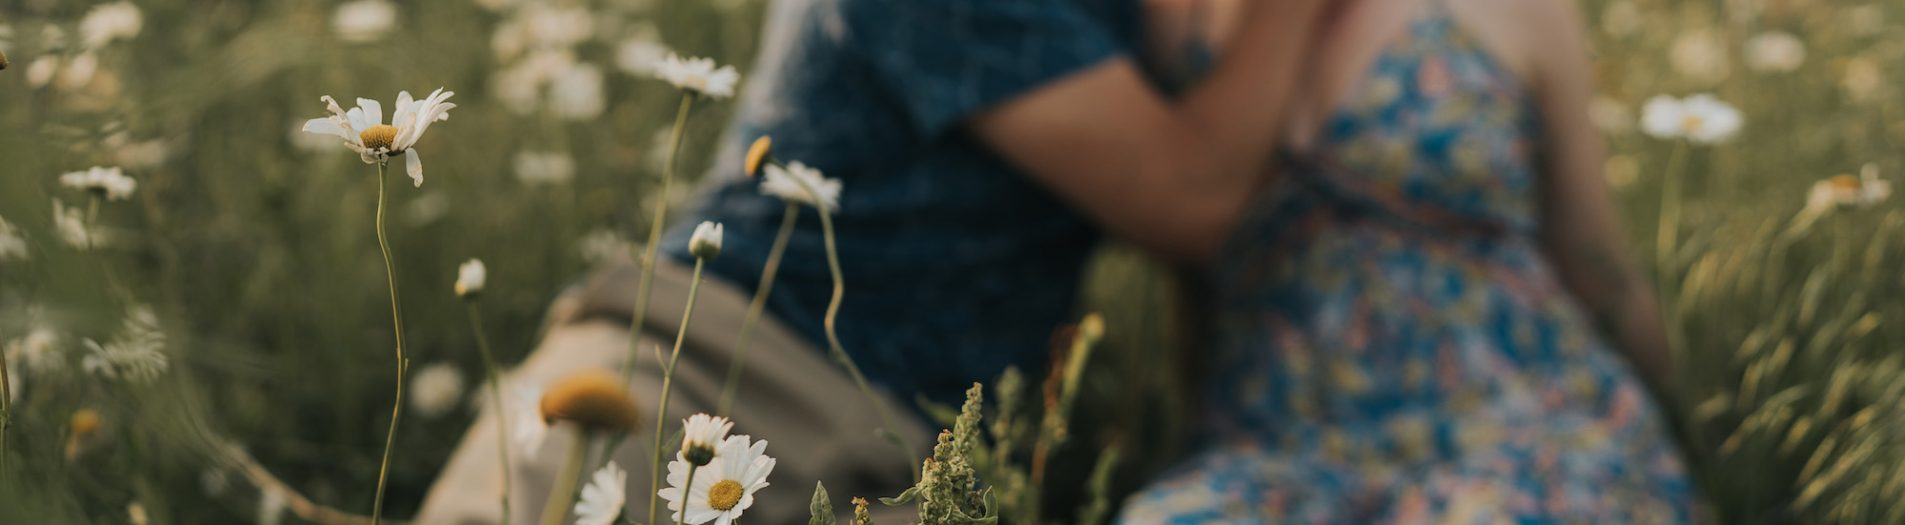 Outdoor Chicago Engagement Session in a Wildflower Field | Sarah + James